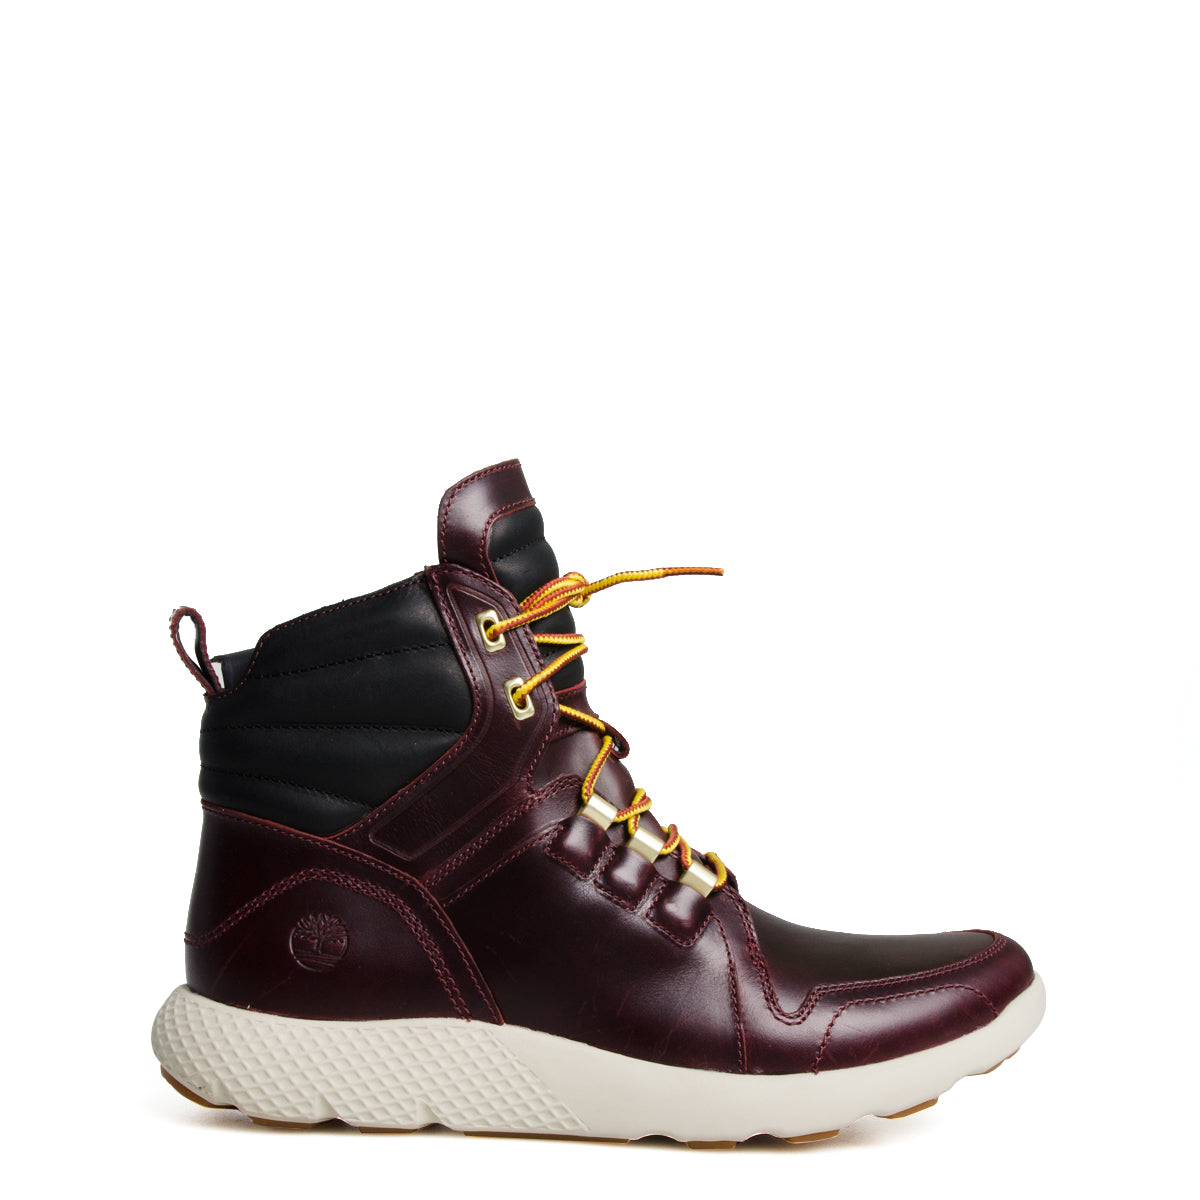 6b953ce4f81 Timberland Flyroam Leather Boots Burgundy | Chicago City Sports